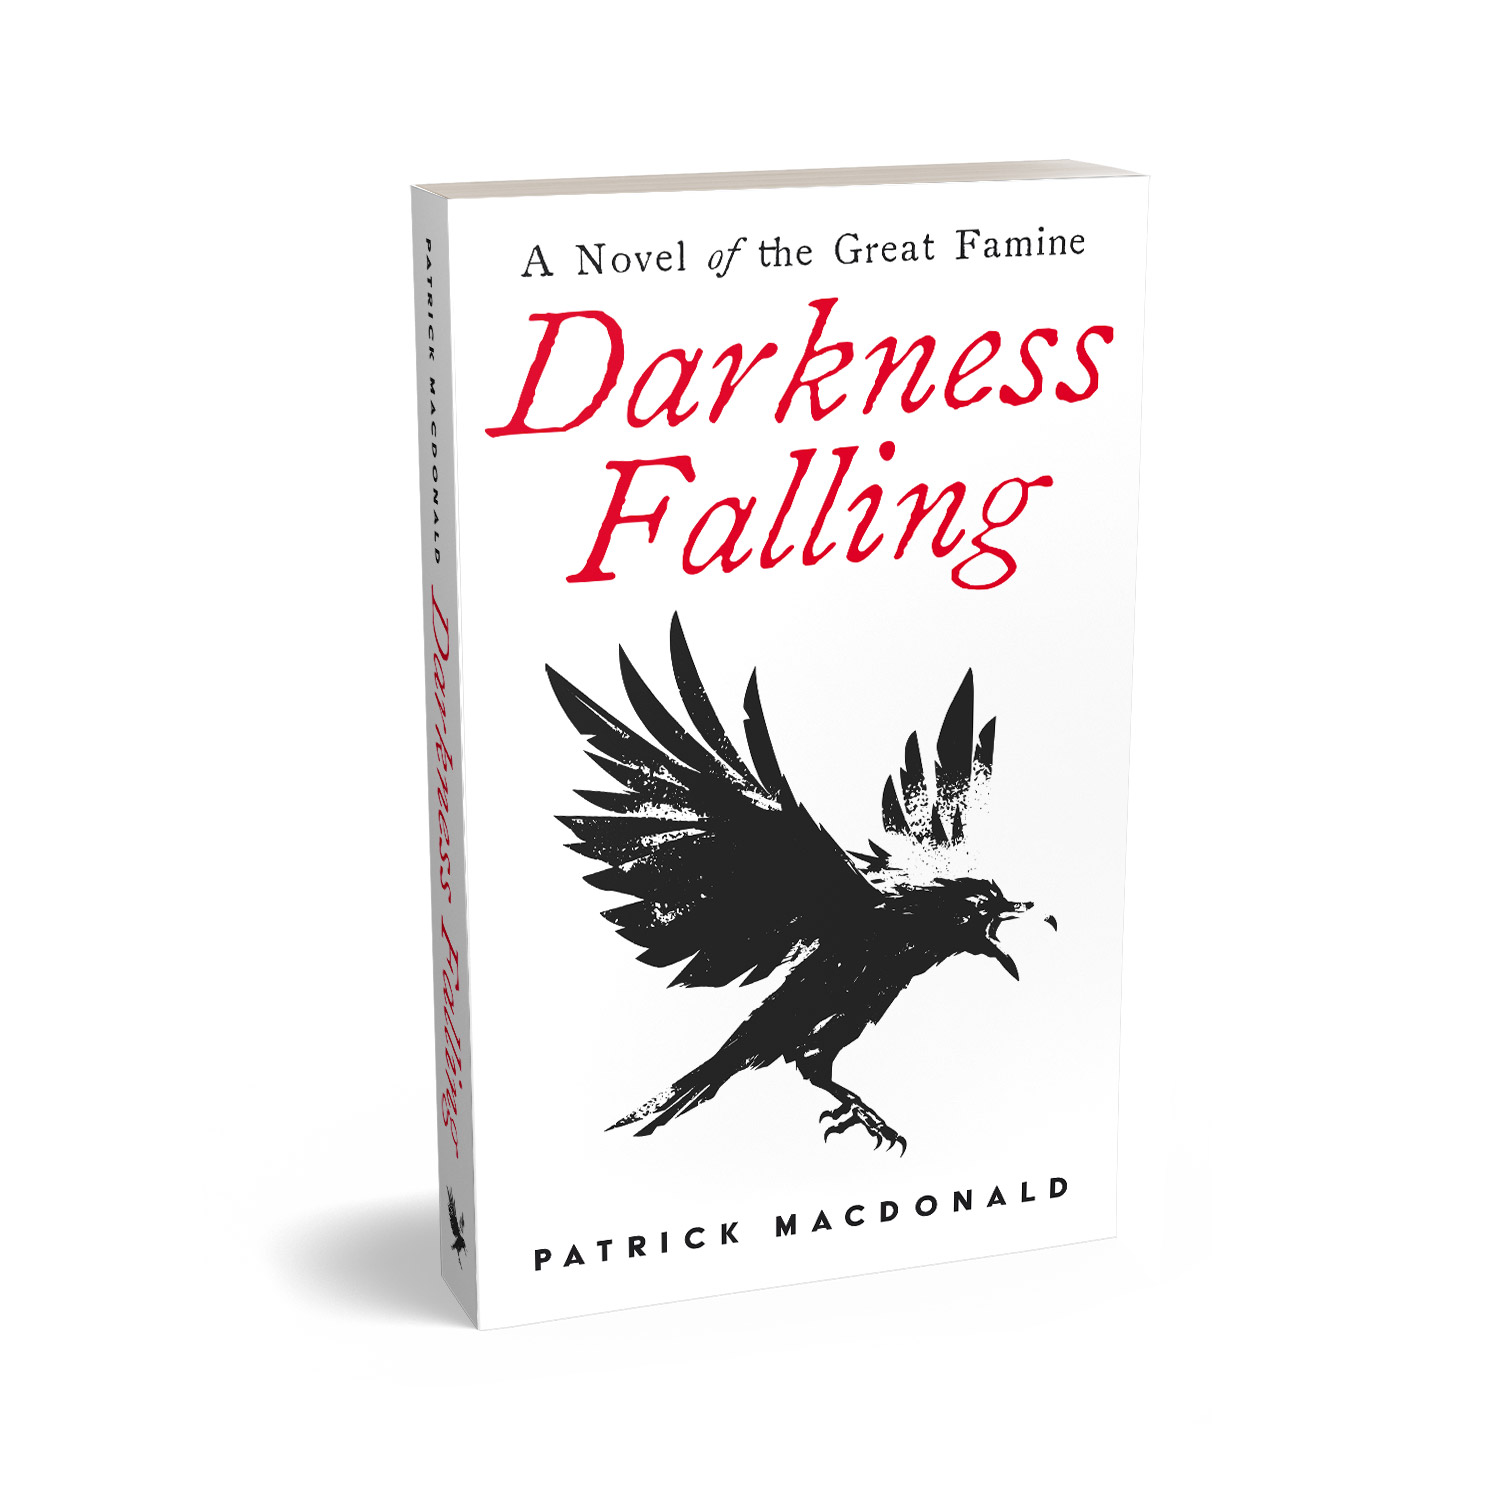 'Darkness Falling' is a sweeping historical novel, set during the Great Famine, in mid 19th Century Ireland. The author is Patrick MacDonald. The book cover design and interior formatting are by Mark Thomas. To learn more about what Mark could do for your book, please visit coverness.com.